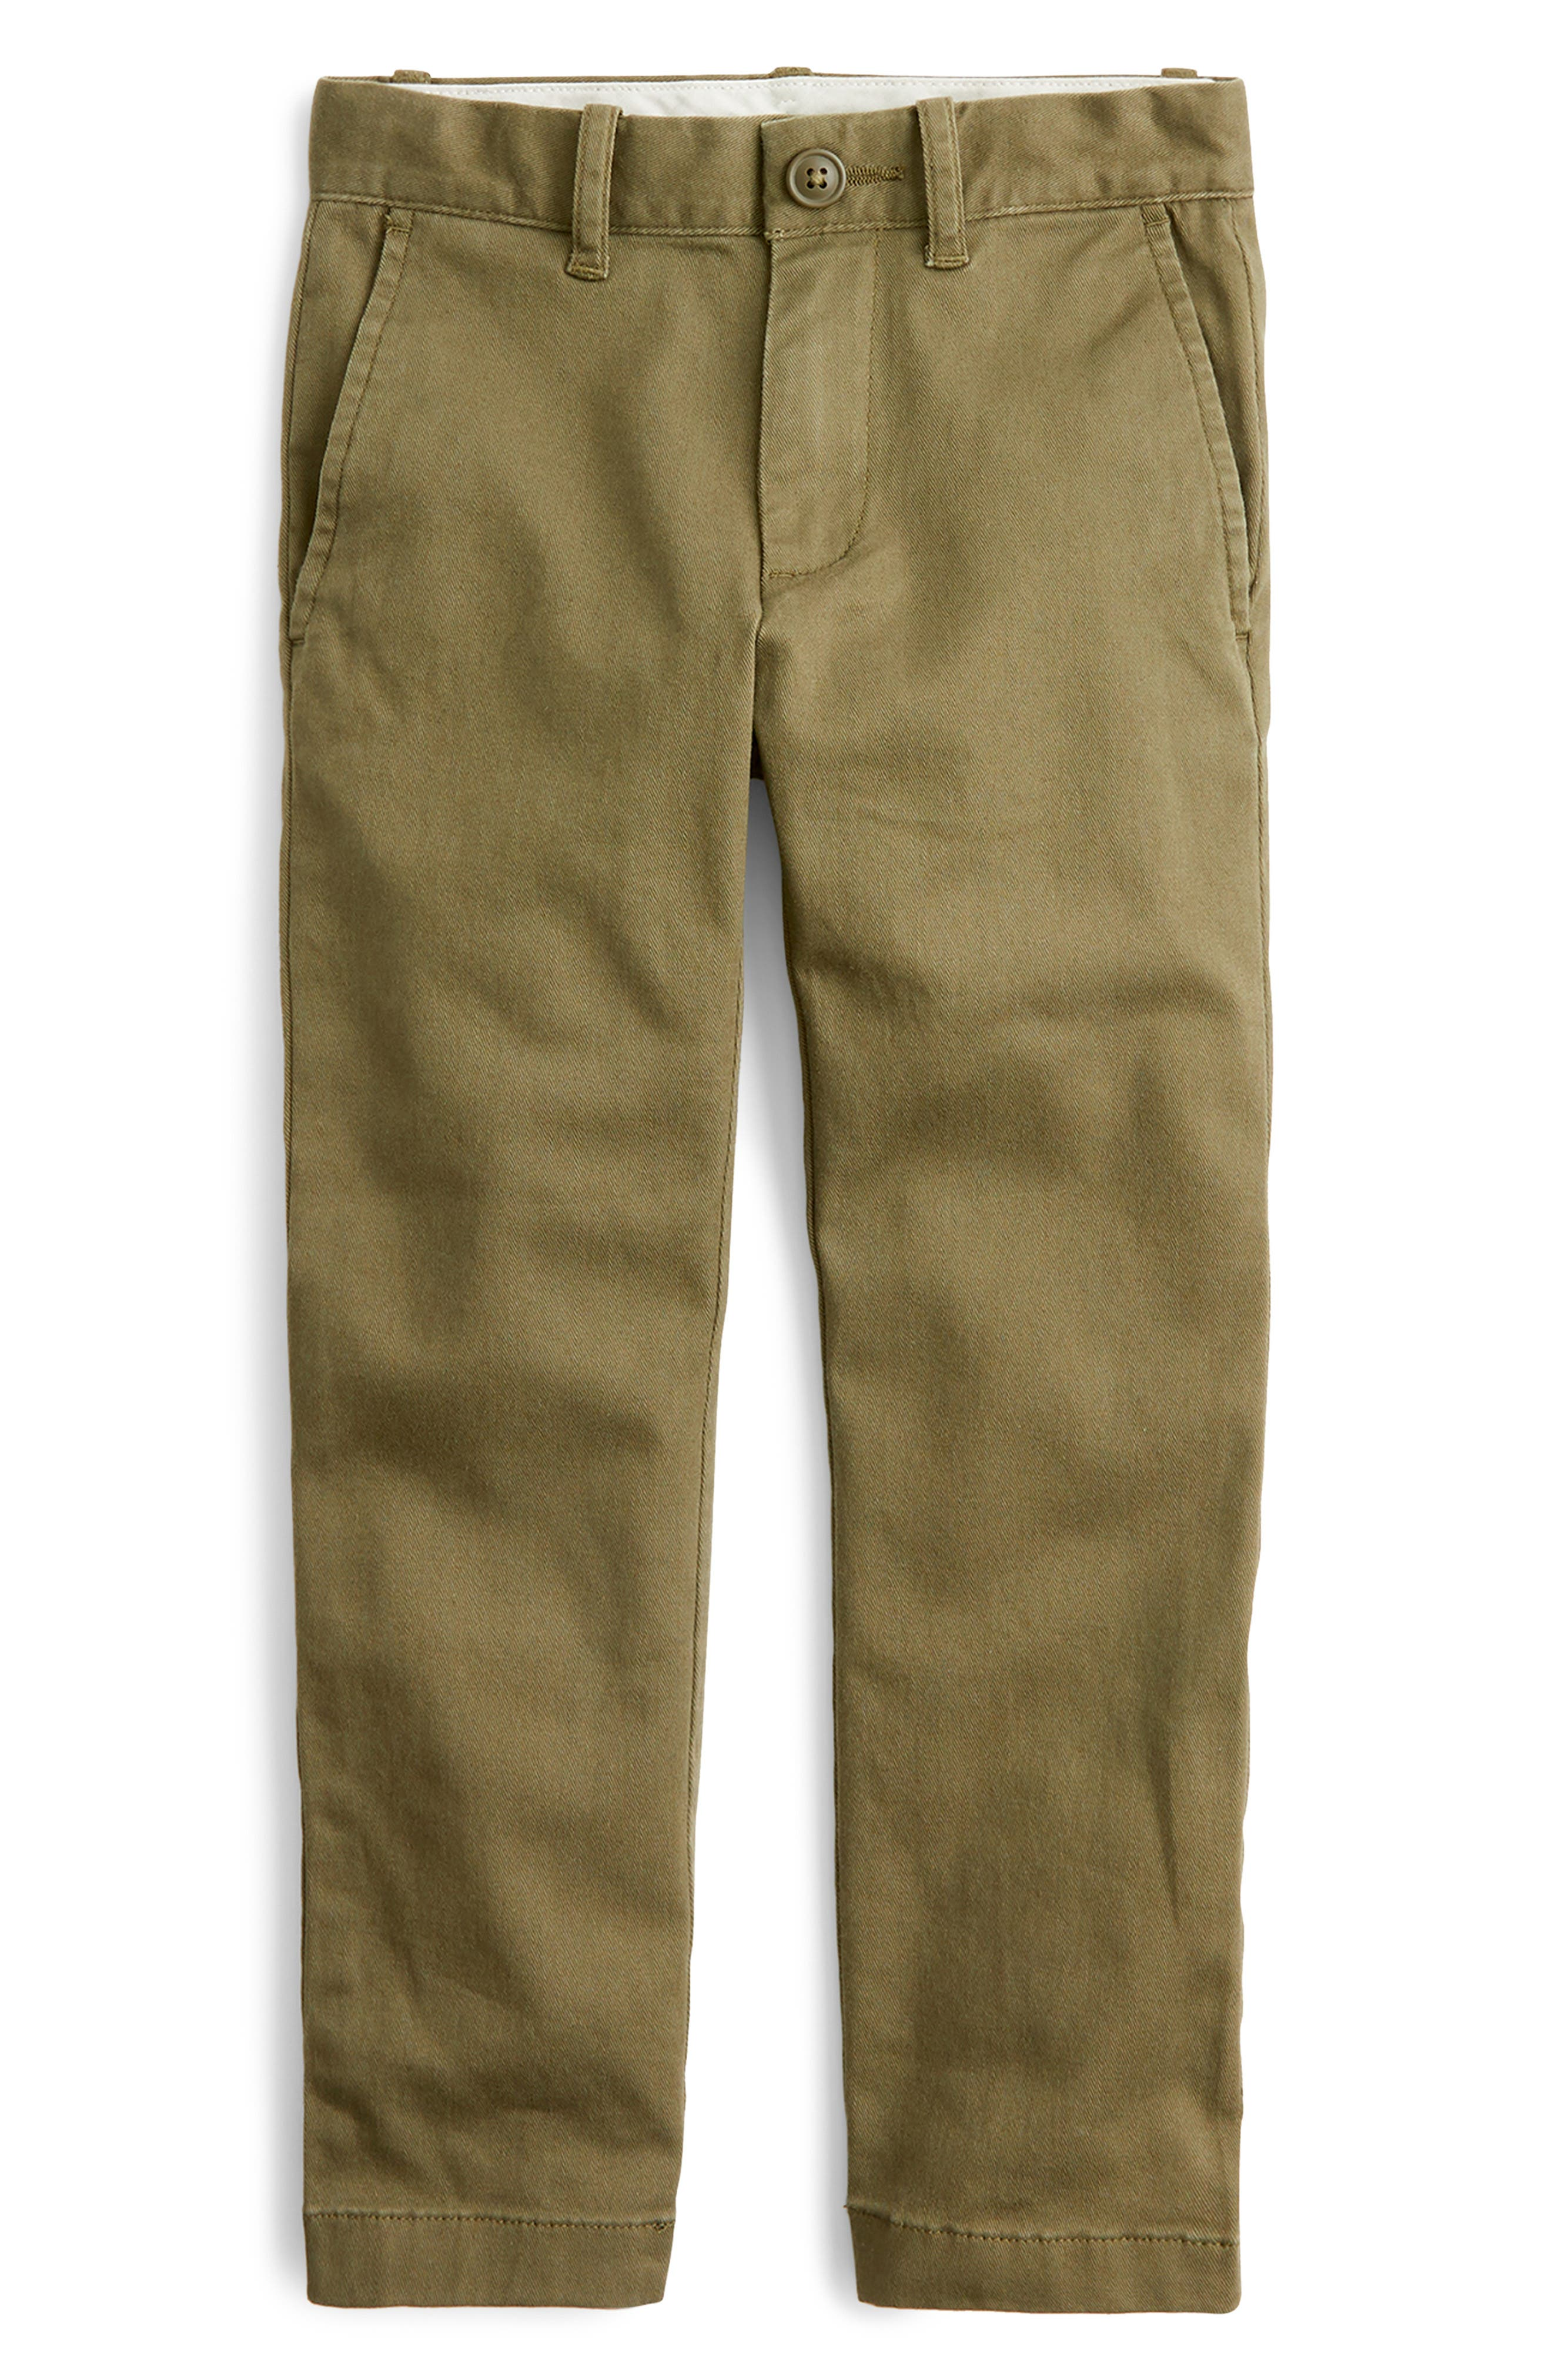 Boys Crewcuts By Jcrew Chino Pants Size 14  Green